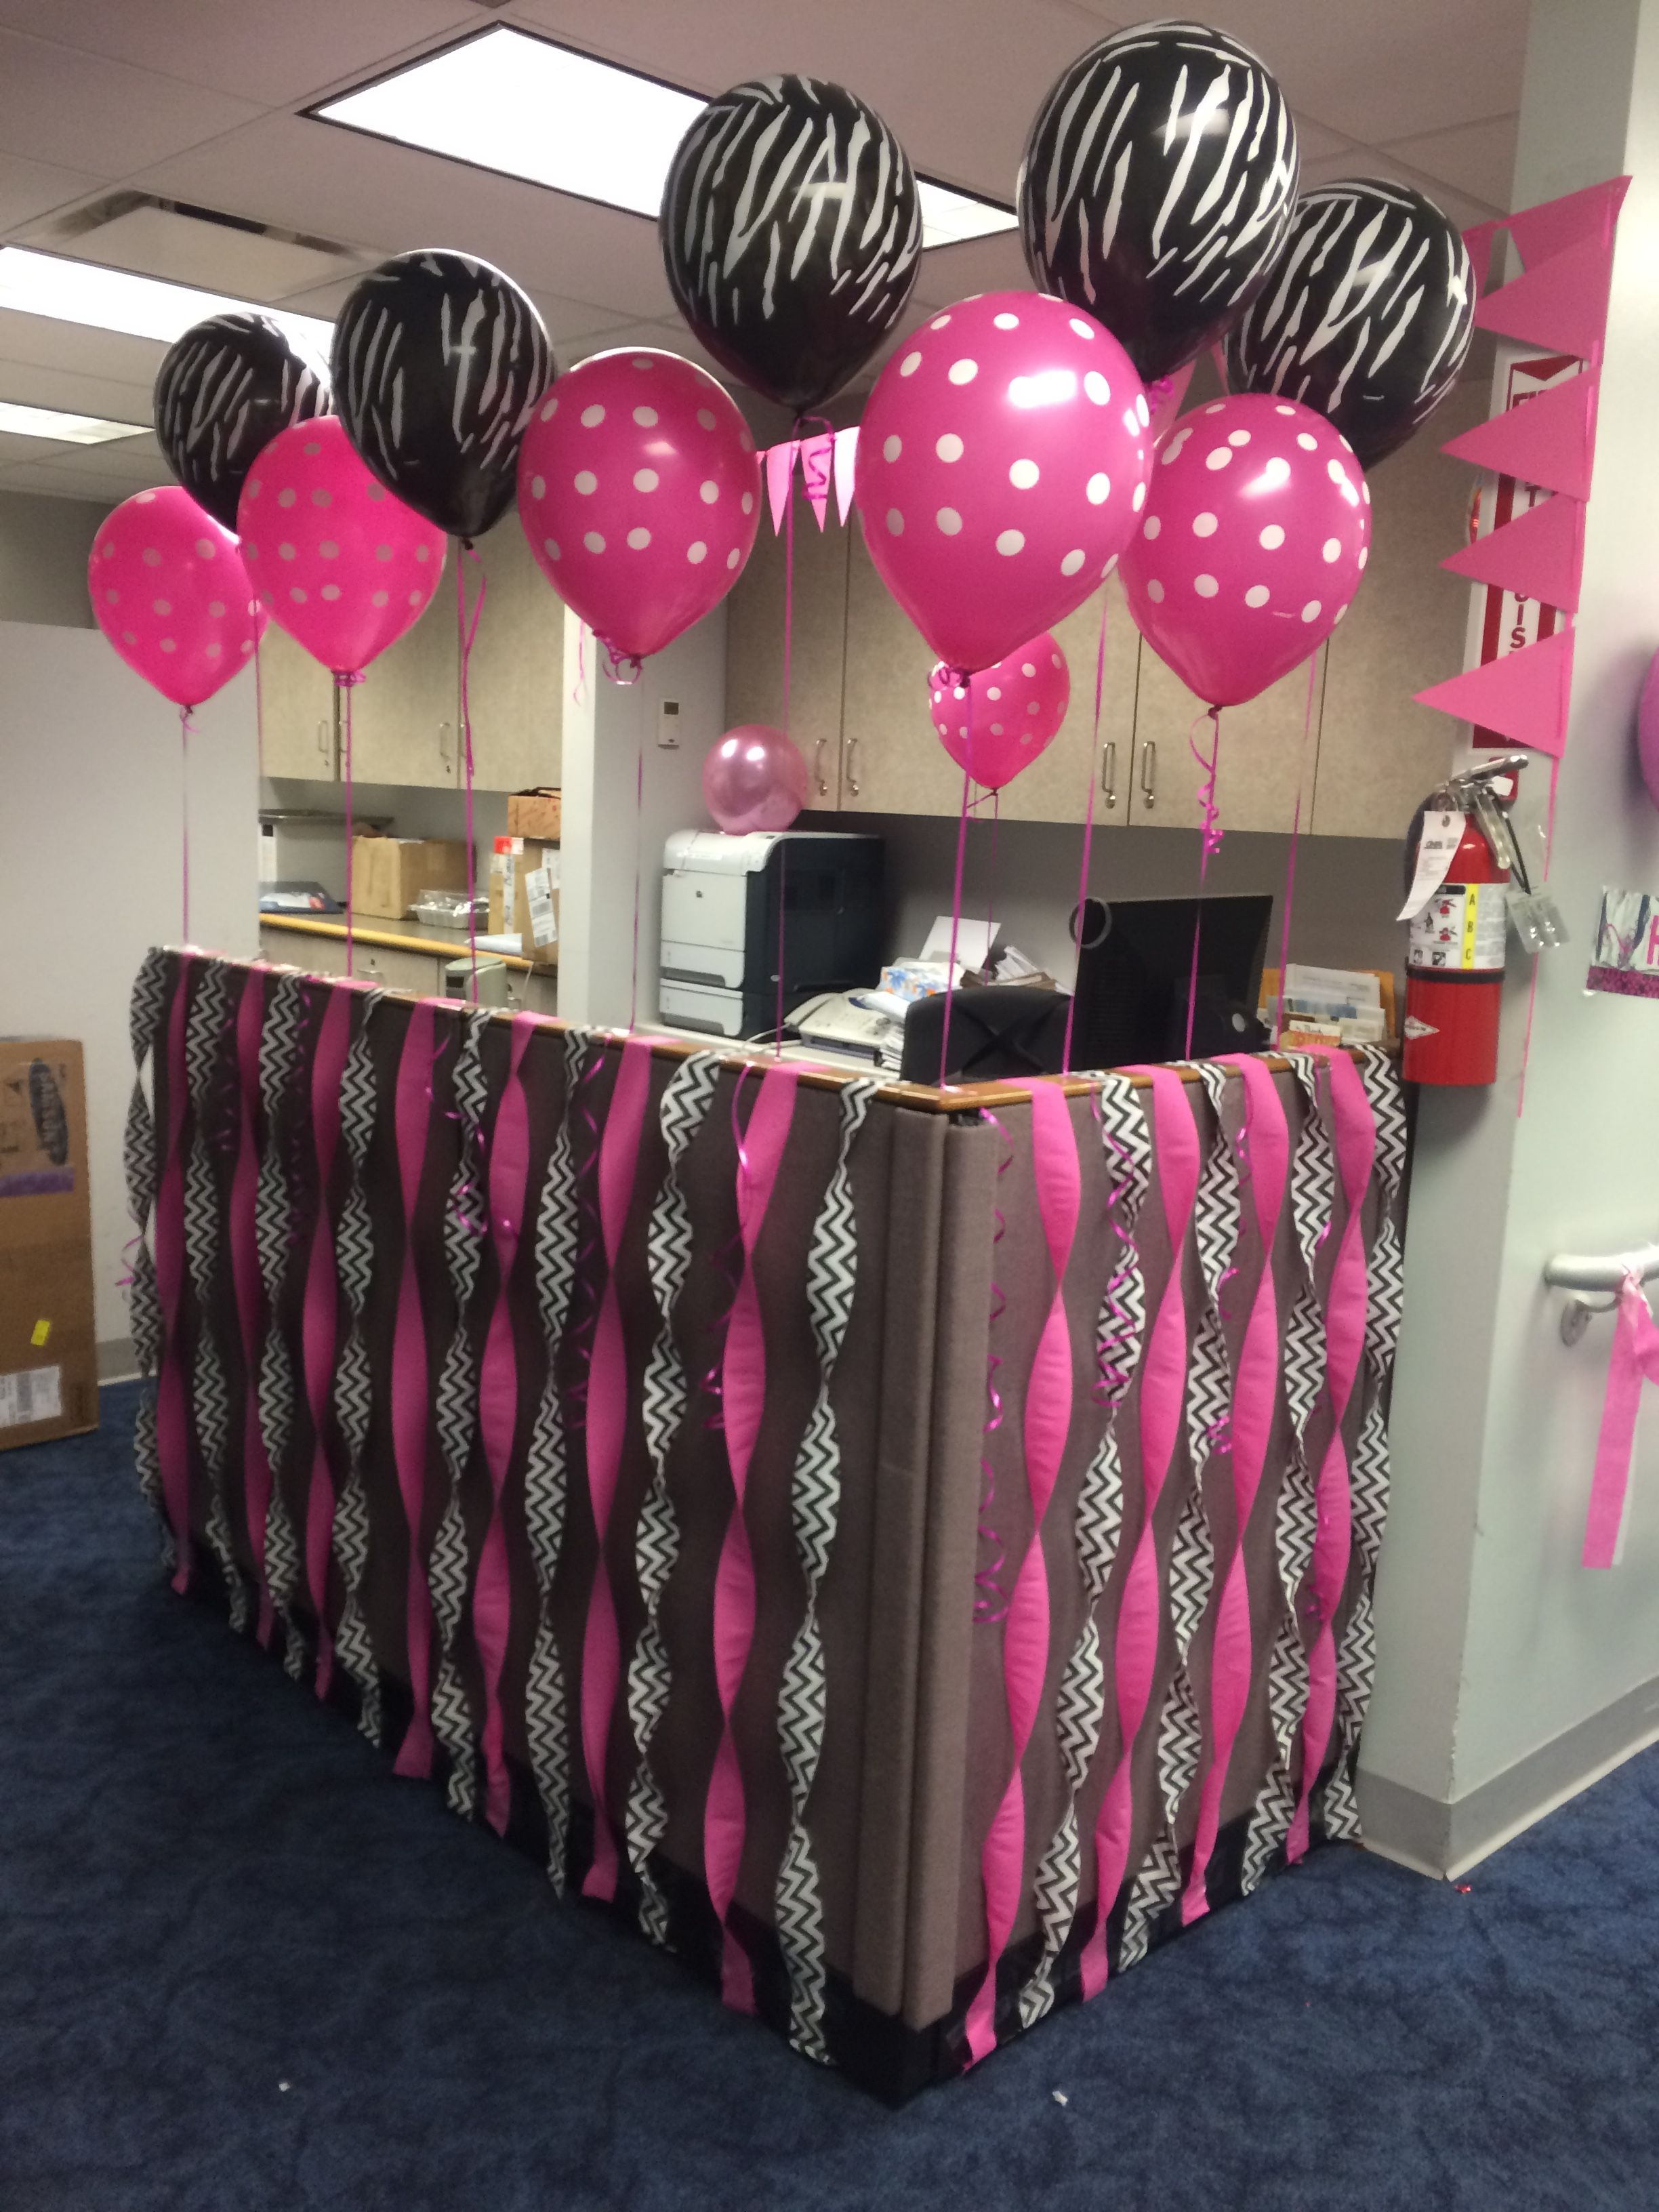 office birthday decorations. office birthday decorations, cubicle party decoration ideas, boss birthday, wishes, decorations i